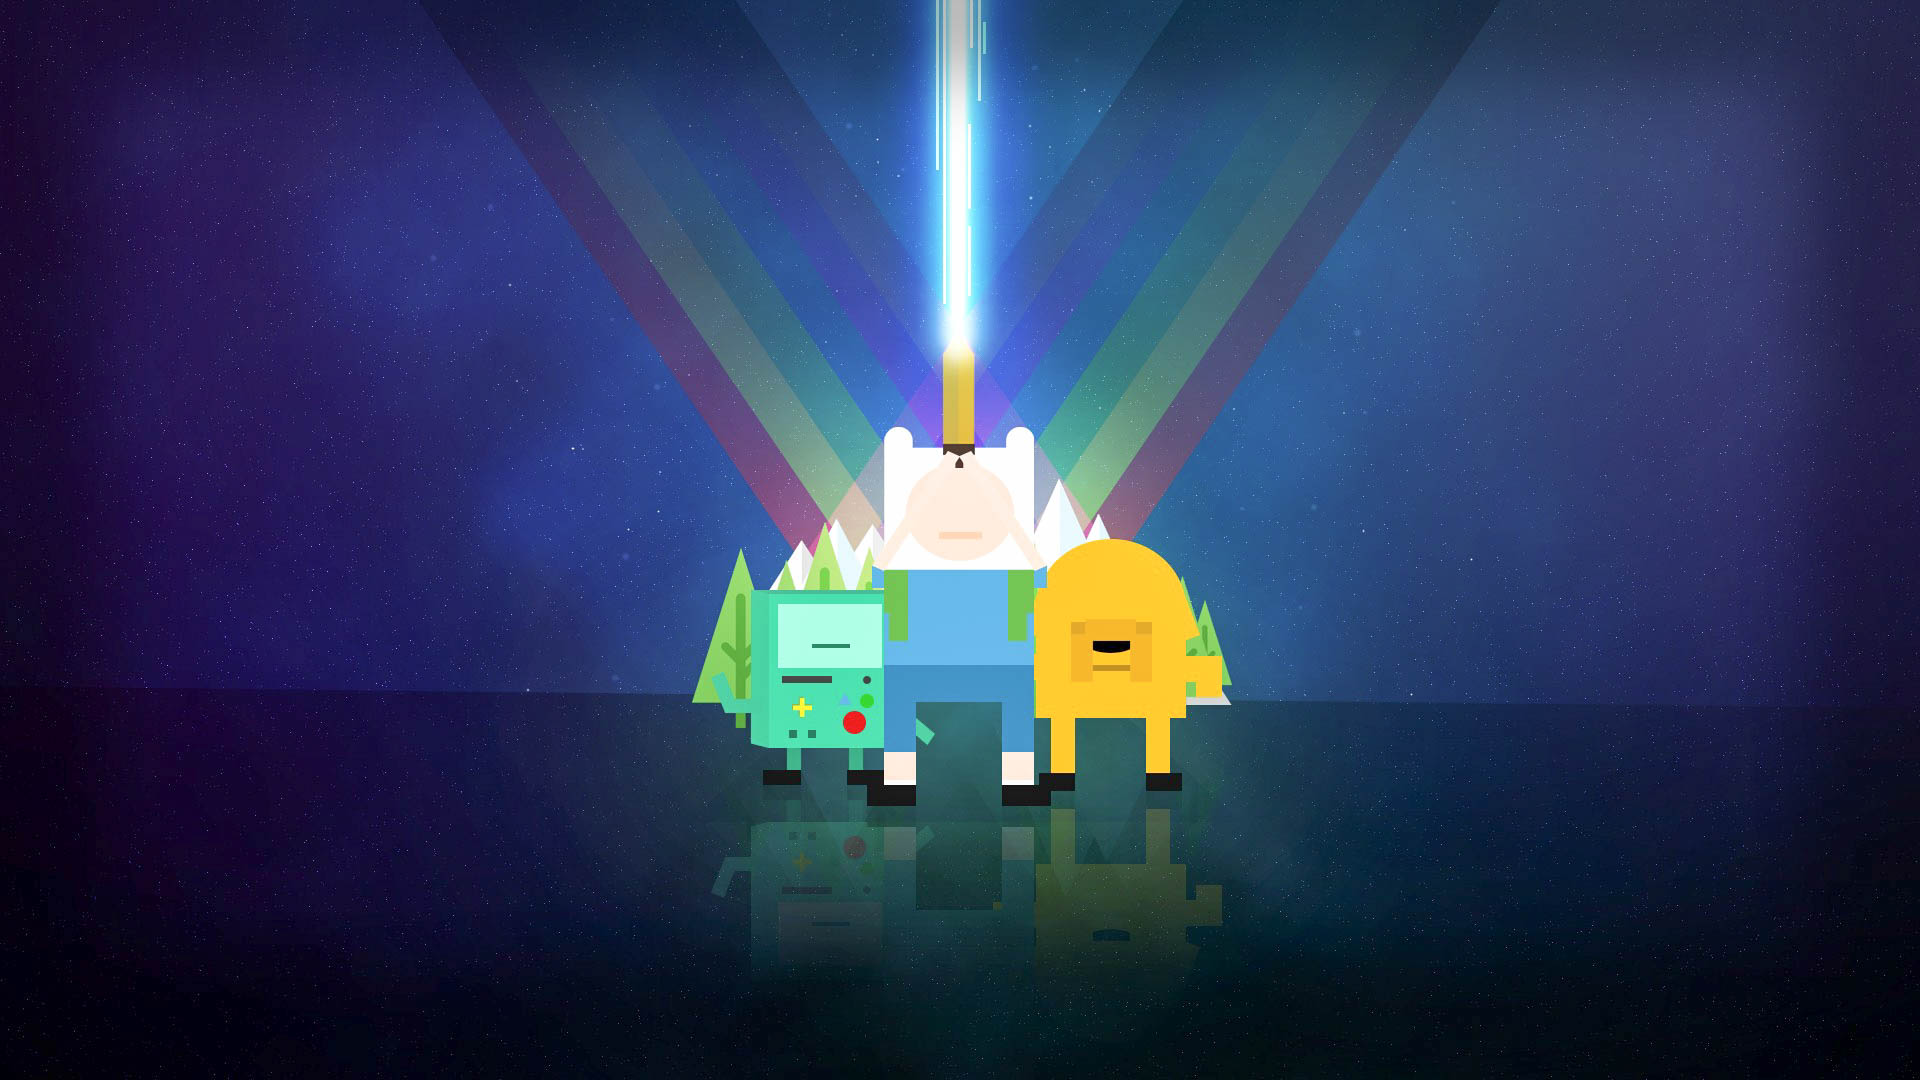 Adventure Time Tv Show Beautiful Wallpapers In High ...